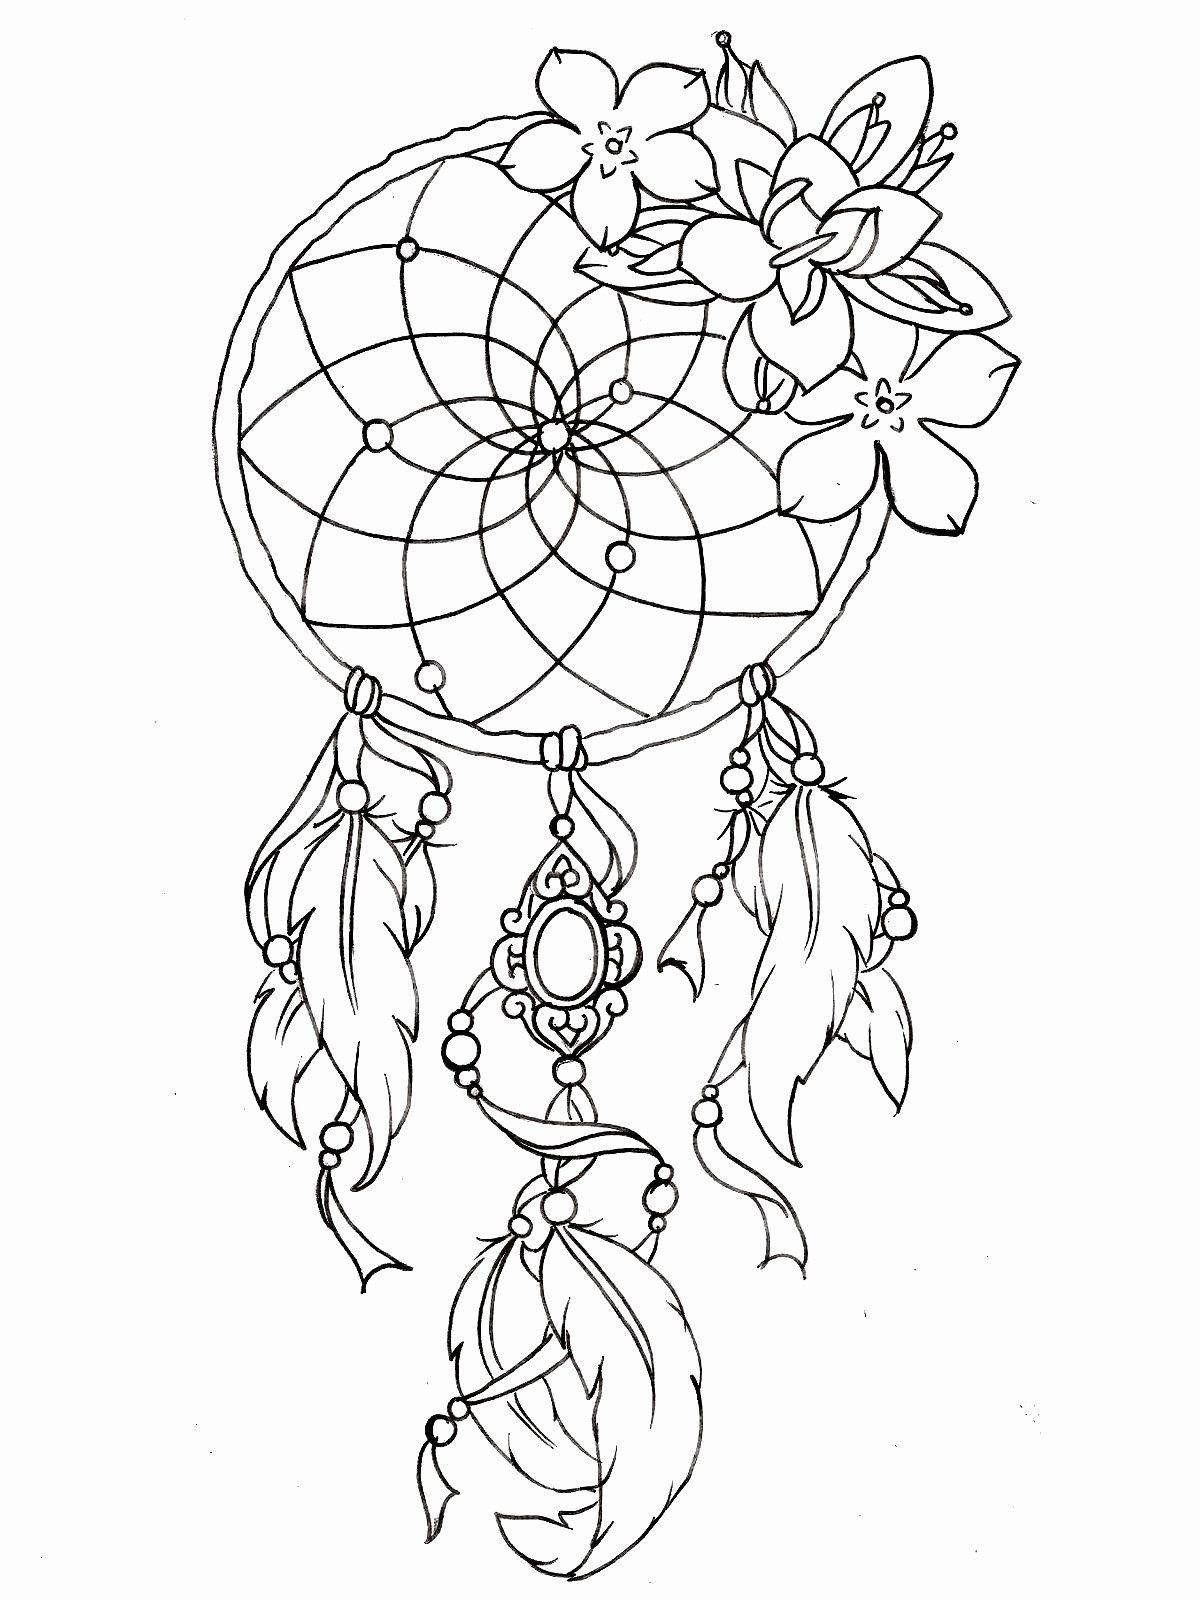 Dream Catcher Coloring Page Beautiful Dream Catcher Coloring Page Dream Catcher Tattoo Design Dream Catcher Coloring Pages Tattoo Coloring Book